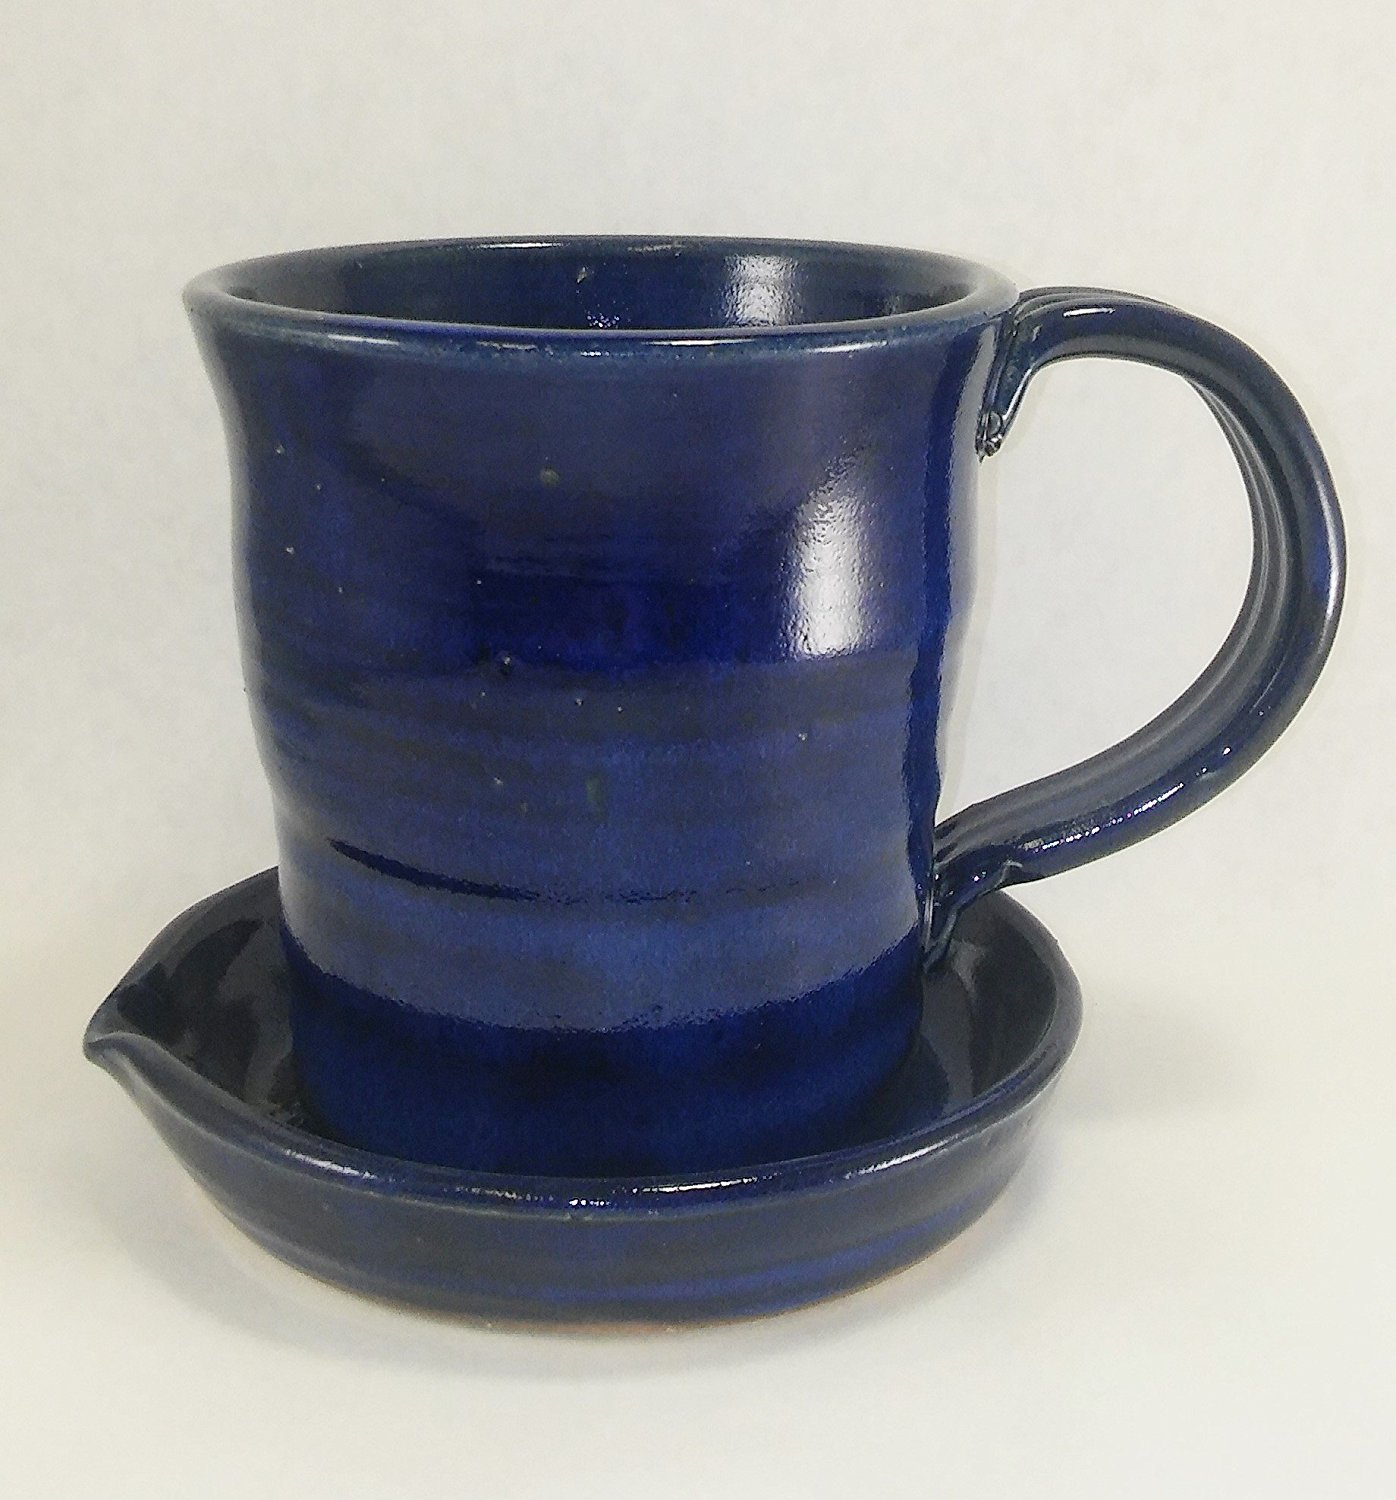 Aunt Chris' Pottery - Heavy Hand Made - Bacon Cooker - Glazed Navy Blue - Unique New Way of Cooking Bacon - Microwave, Oven And Dishwasher Safe - Easy Clean Up!